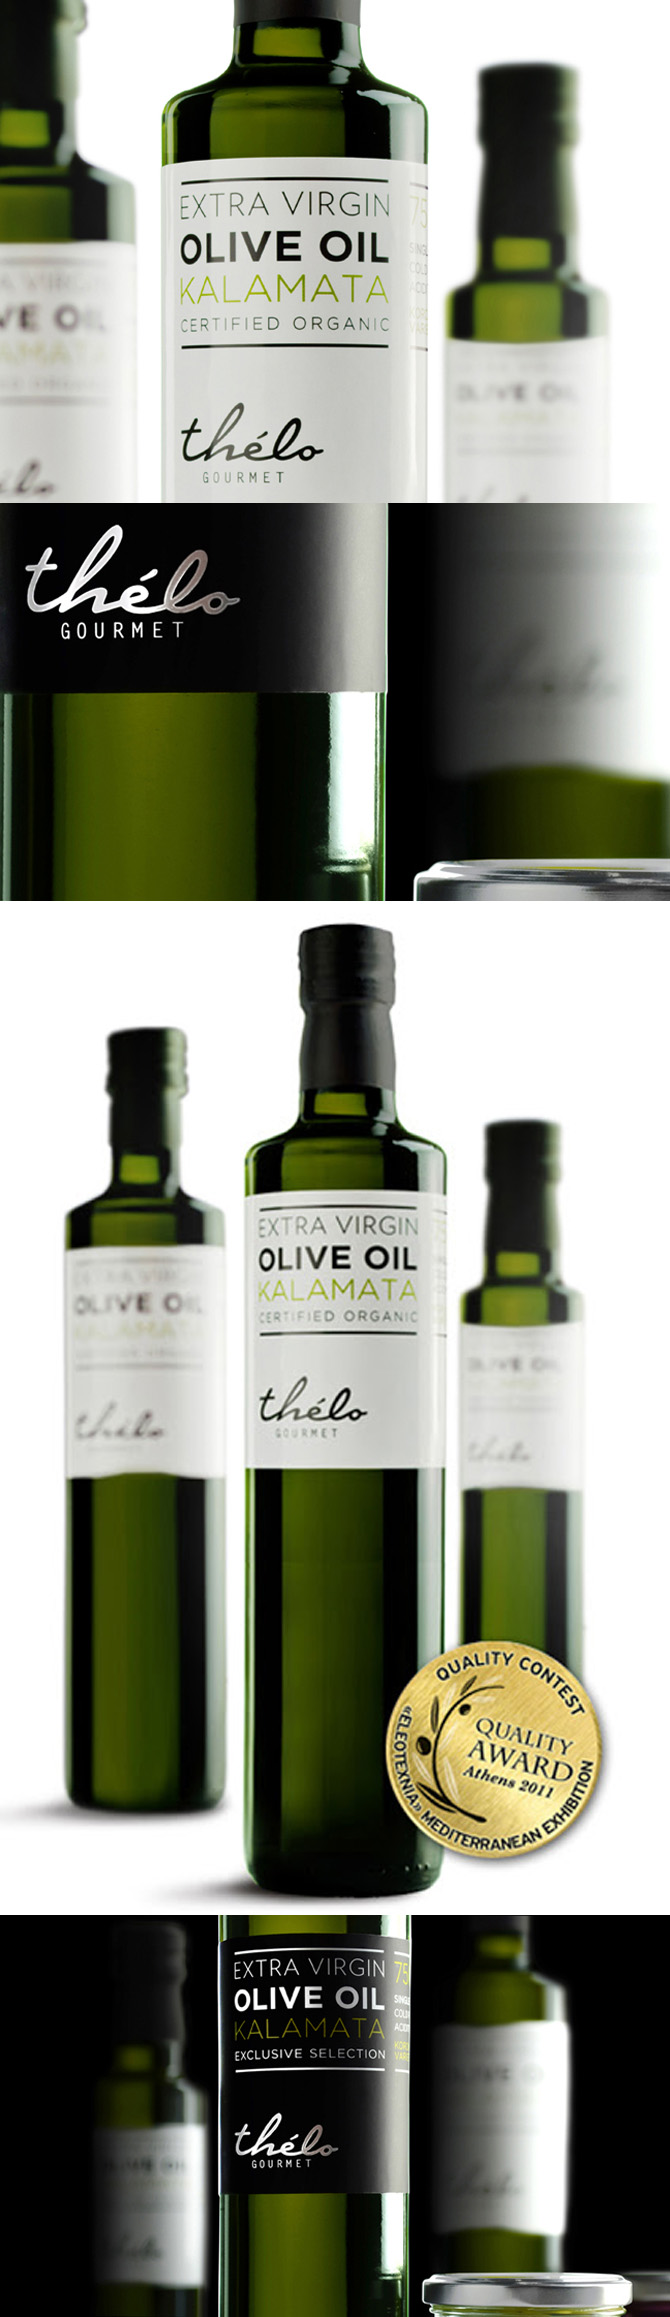 Thelo olive oil packaging